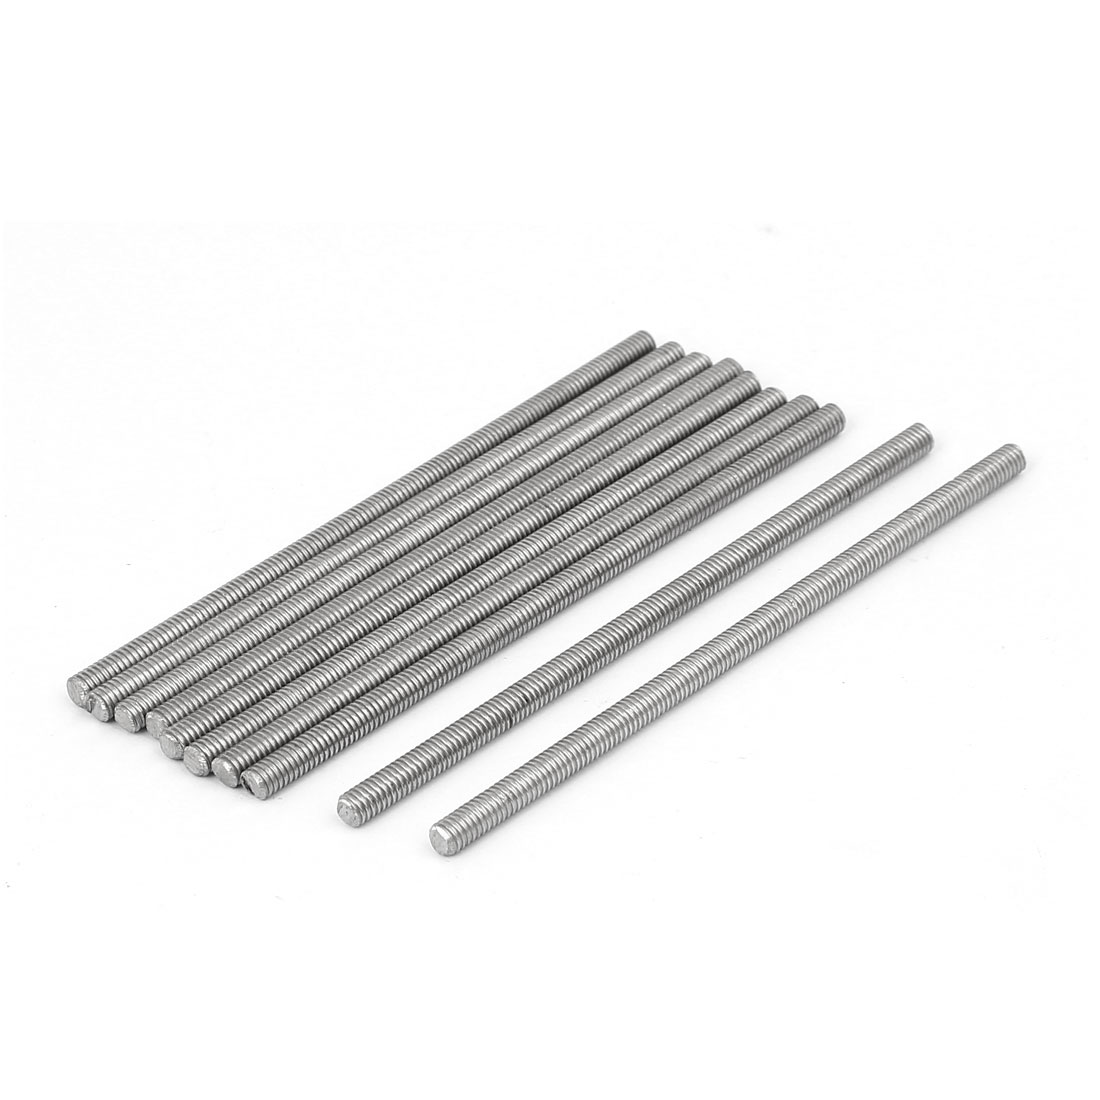 M4 x 90mm 304 Stainless Steel Fully Threaded Rod Bar Studs Fasteners 10 Pcs